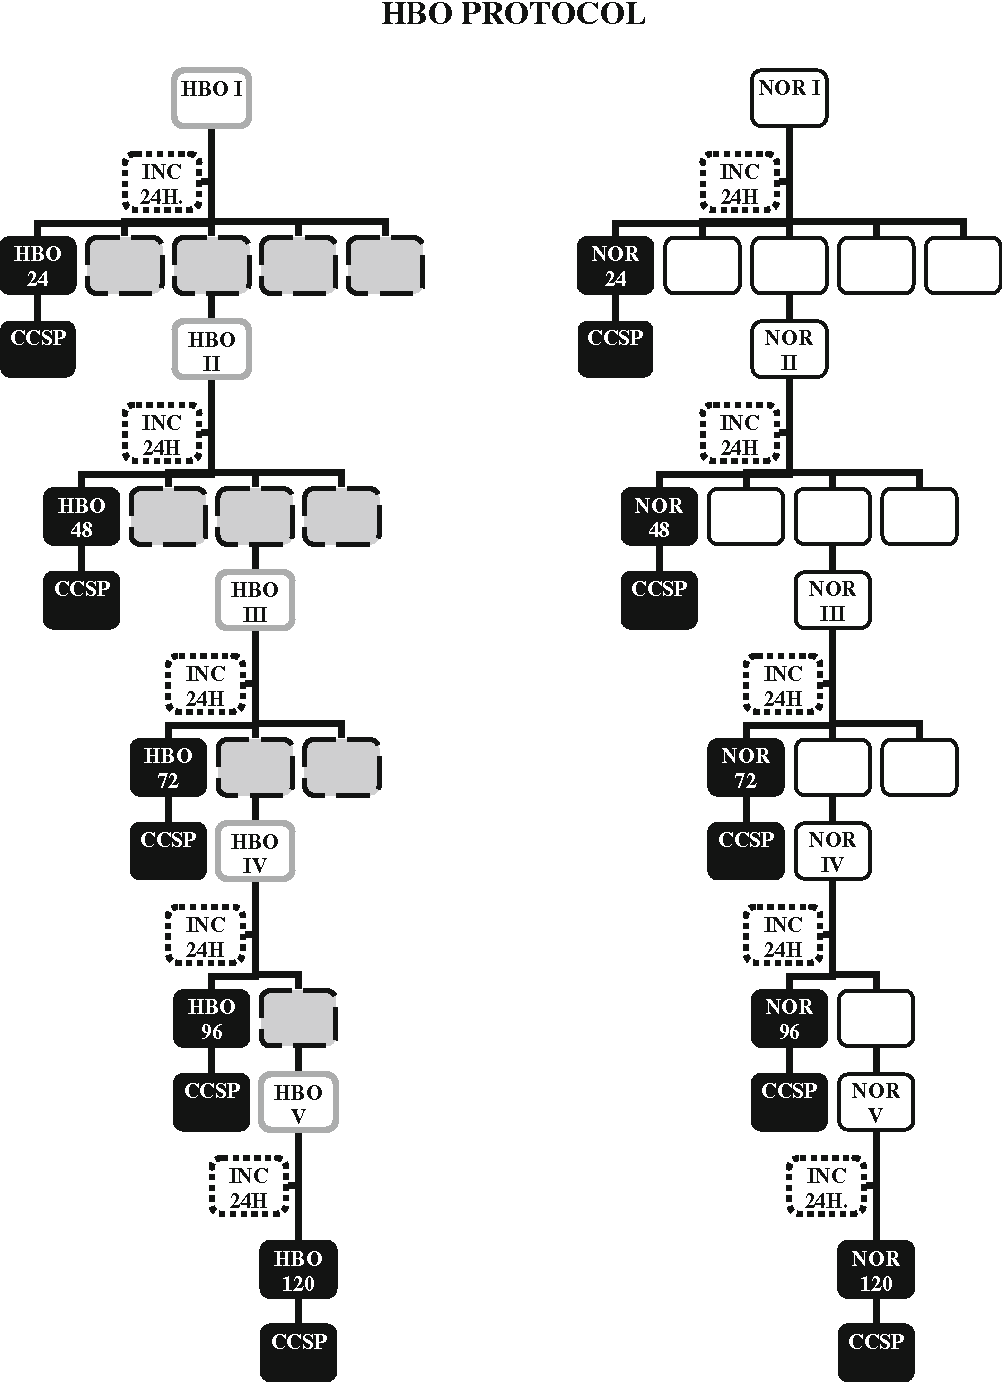 Fig. 1 Flowchart of experimental conditions for all cell lines. Cells were exposed to HBO (100% O2, P = 280 kPa, 60 min) or NOR (P = 100 kPa, 21% O2, t = 60 min) conditions, for five sessions, once a day and incubated with 5% CO2, at h = 37 C, for an additional 24 h (24 h INC). At the end of each treatment, a CCSP was removed, centrifuged and stored at -80 C and b cells were stained with hematoxylin/eosin solution. HBOxx or NORxx describe the number of sessions and the total time after the first HBO session (HBOI)